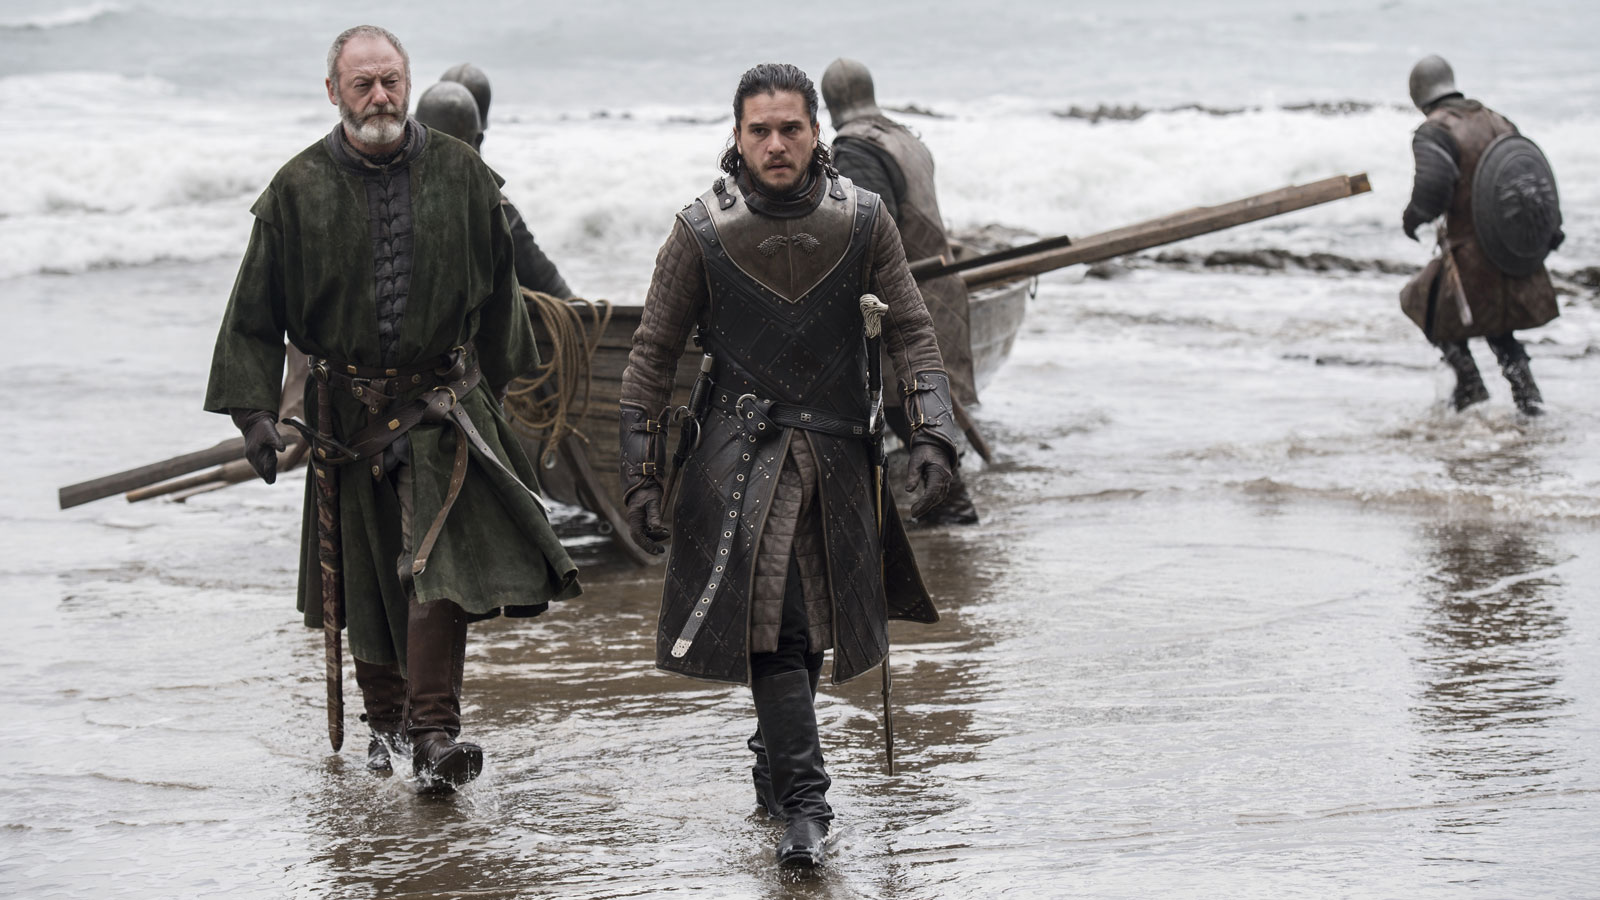 A California Hotel Is Offering a 'Snowy' Upgrade for Game of Thrones Fans